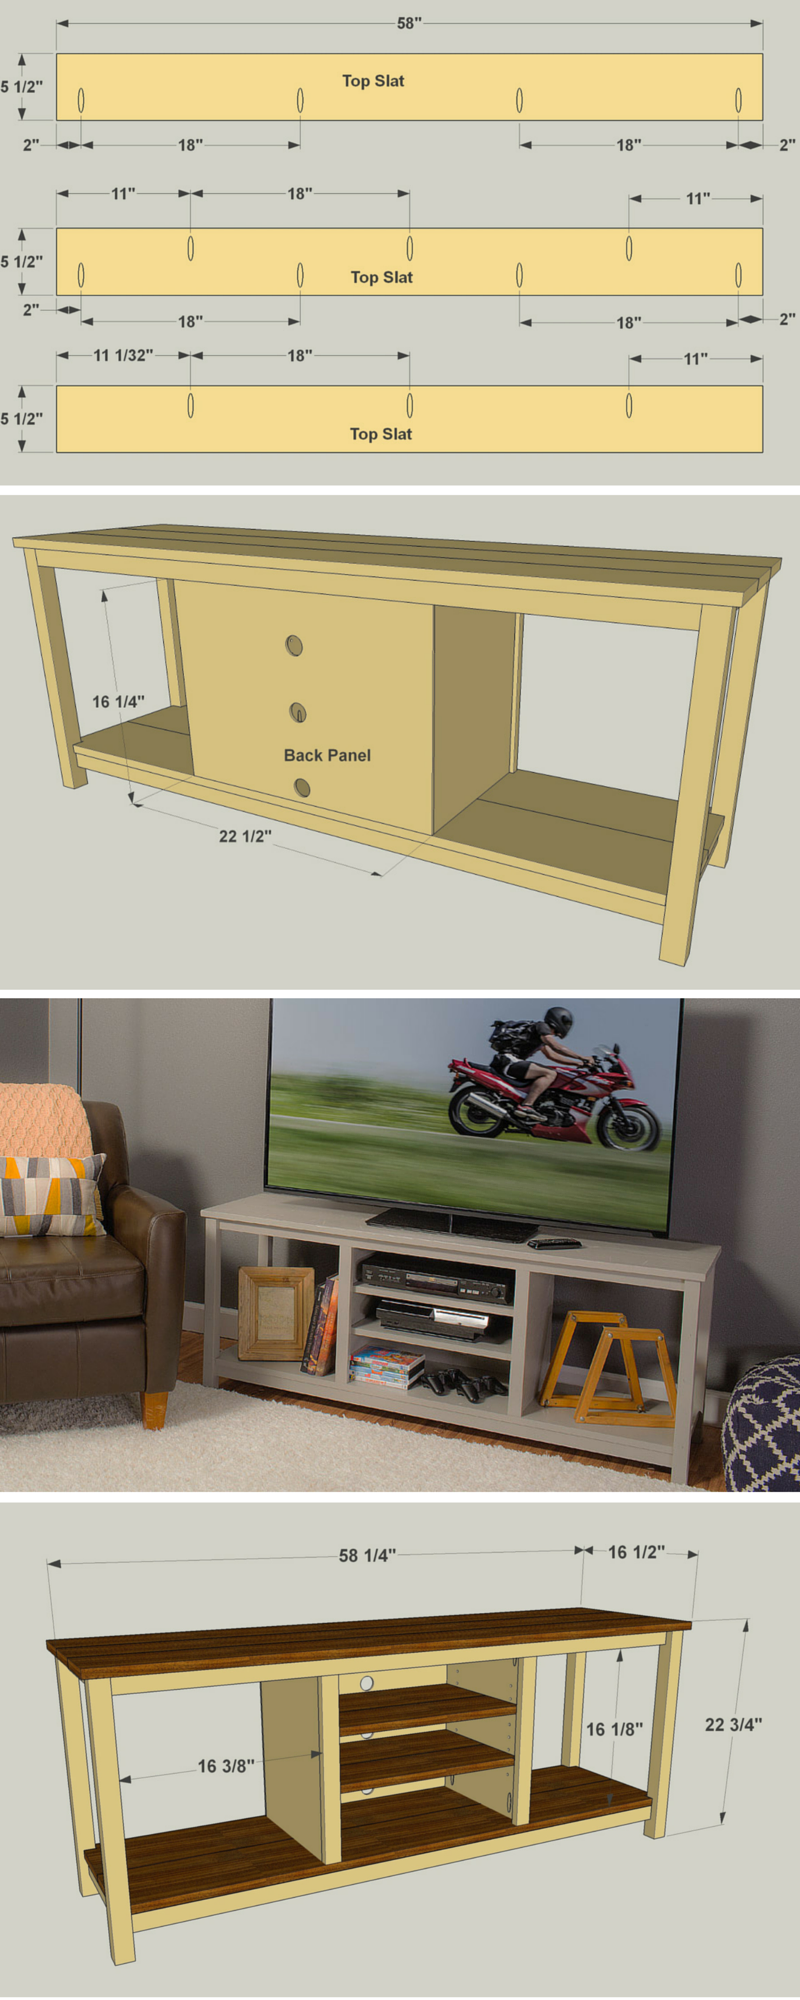 Create An Attractive Home For Your Television With This Open Concept Stand That S Easy To Build It Can Accommod Woodworking Plans Tv Stand Diy Tv Stand Diy Tv